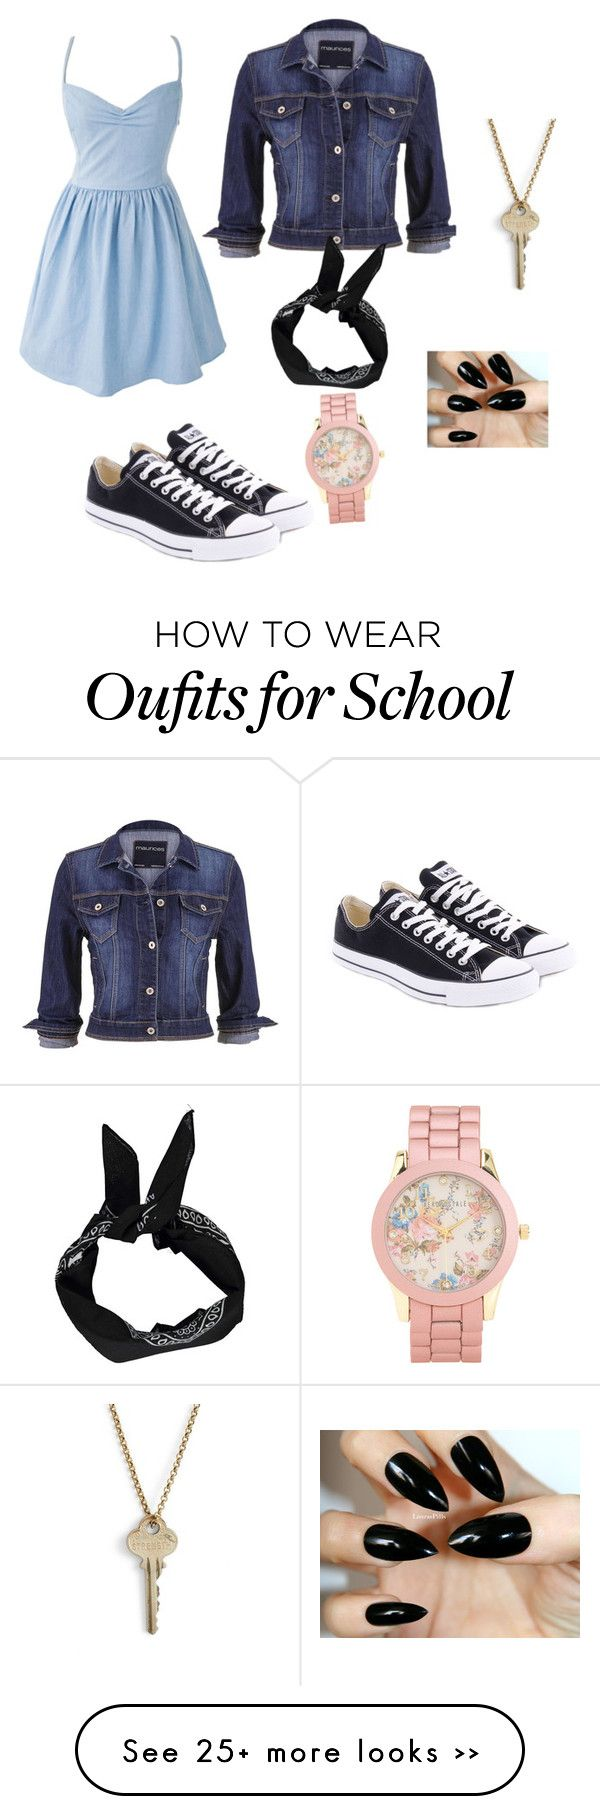 """School"" by jessalynnnnn on Polyvore"